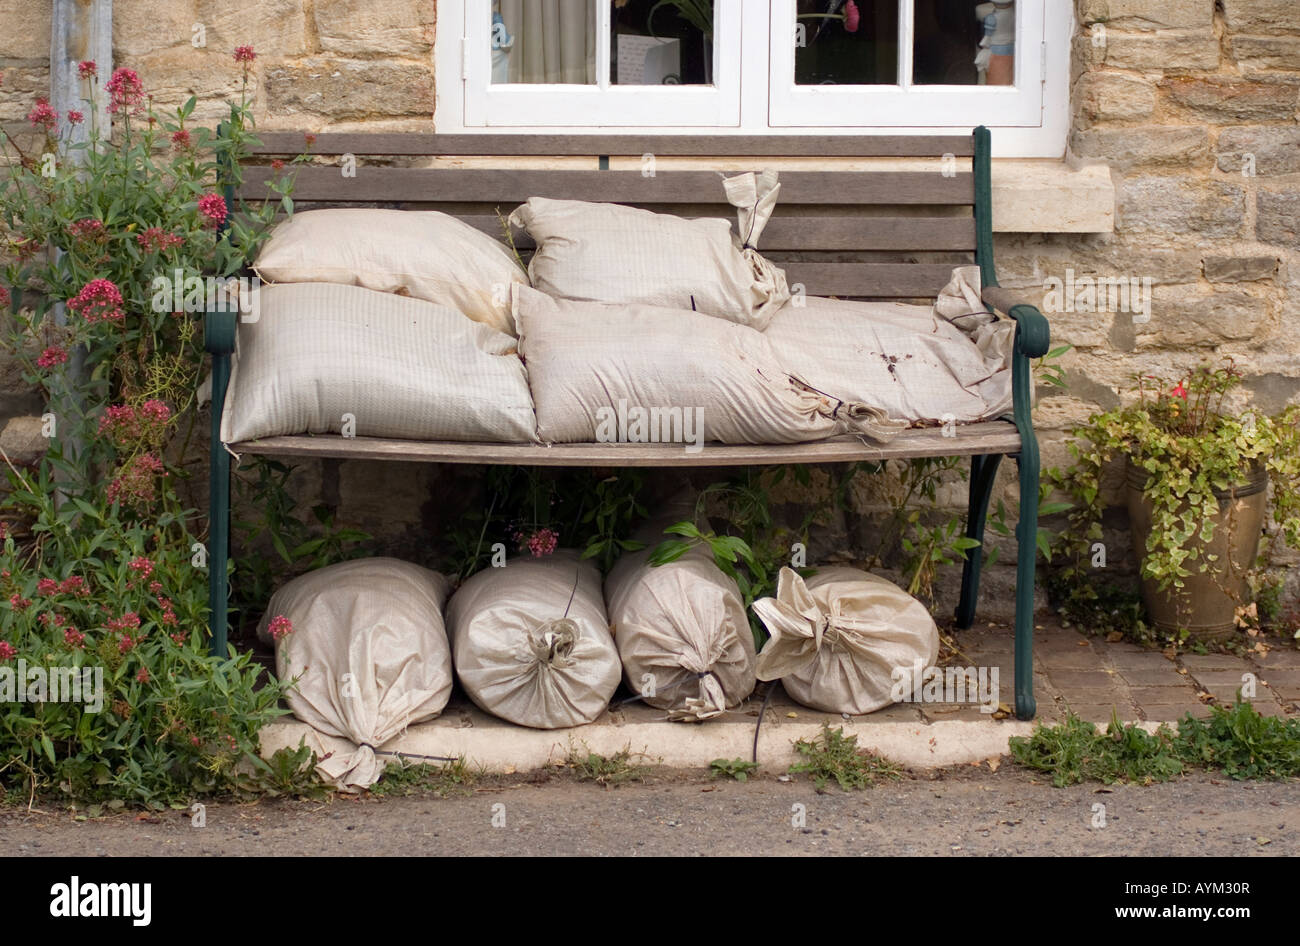 Sandbags ready for use to try and prevent UK flooded in Thrup village in Oxfordshire Oxford Canal river street floods - Stock Image